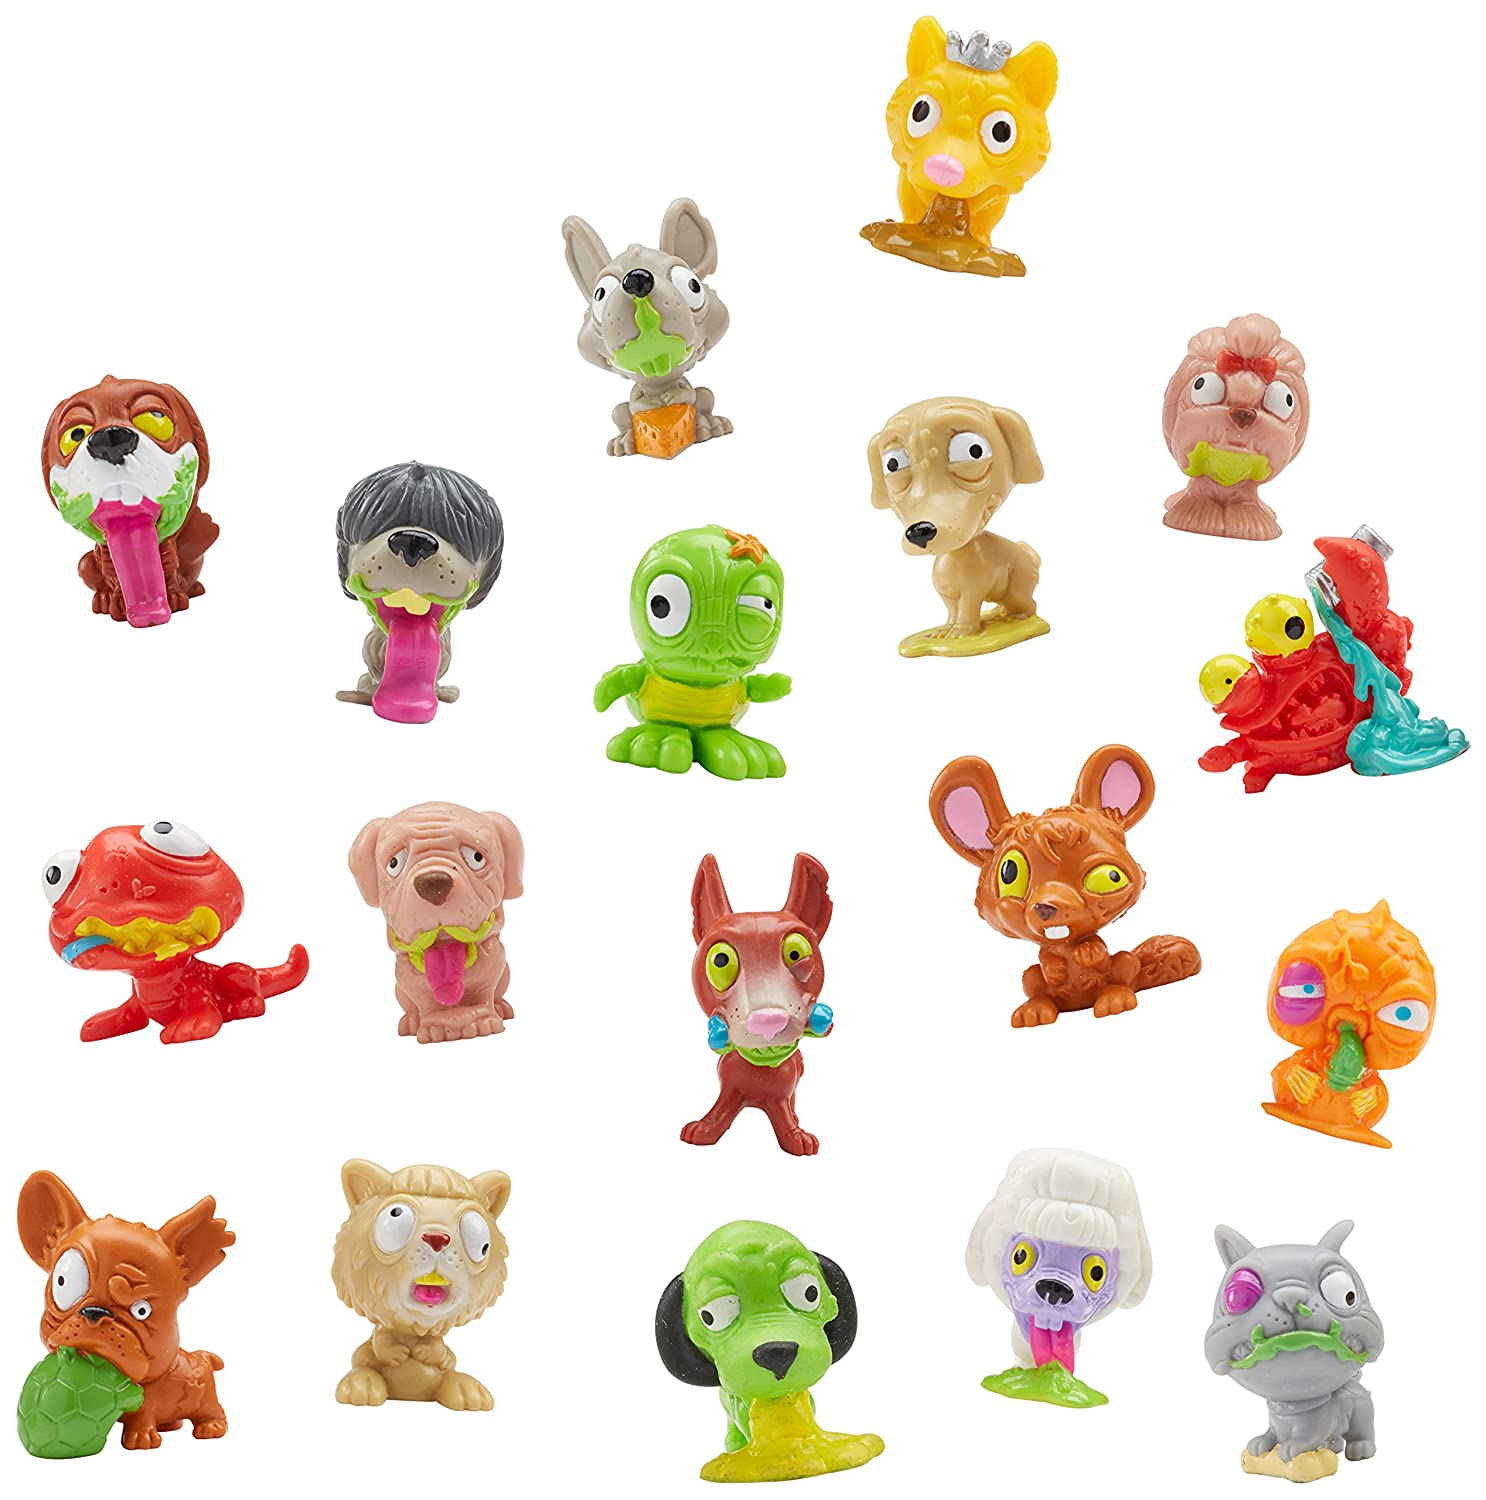 Amazon.com: THE UGGLYS PET SHOP Toy Figure (8-Pack): Toys & Games